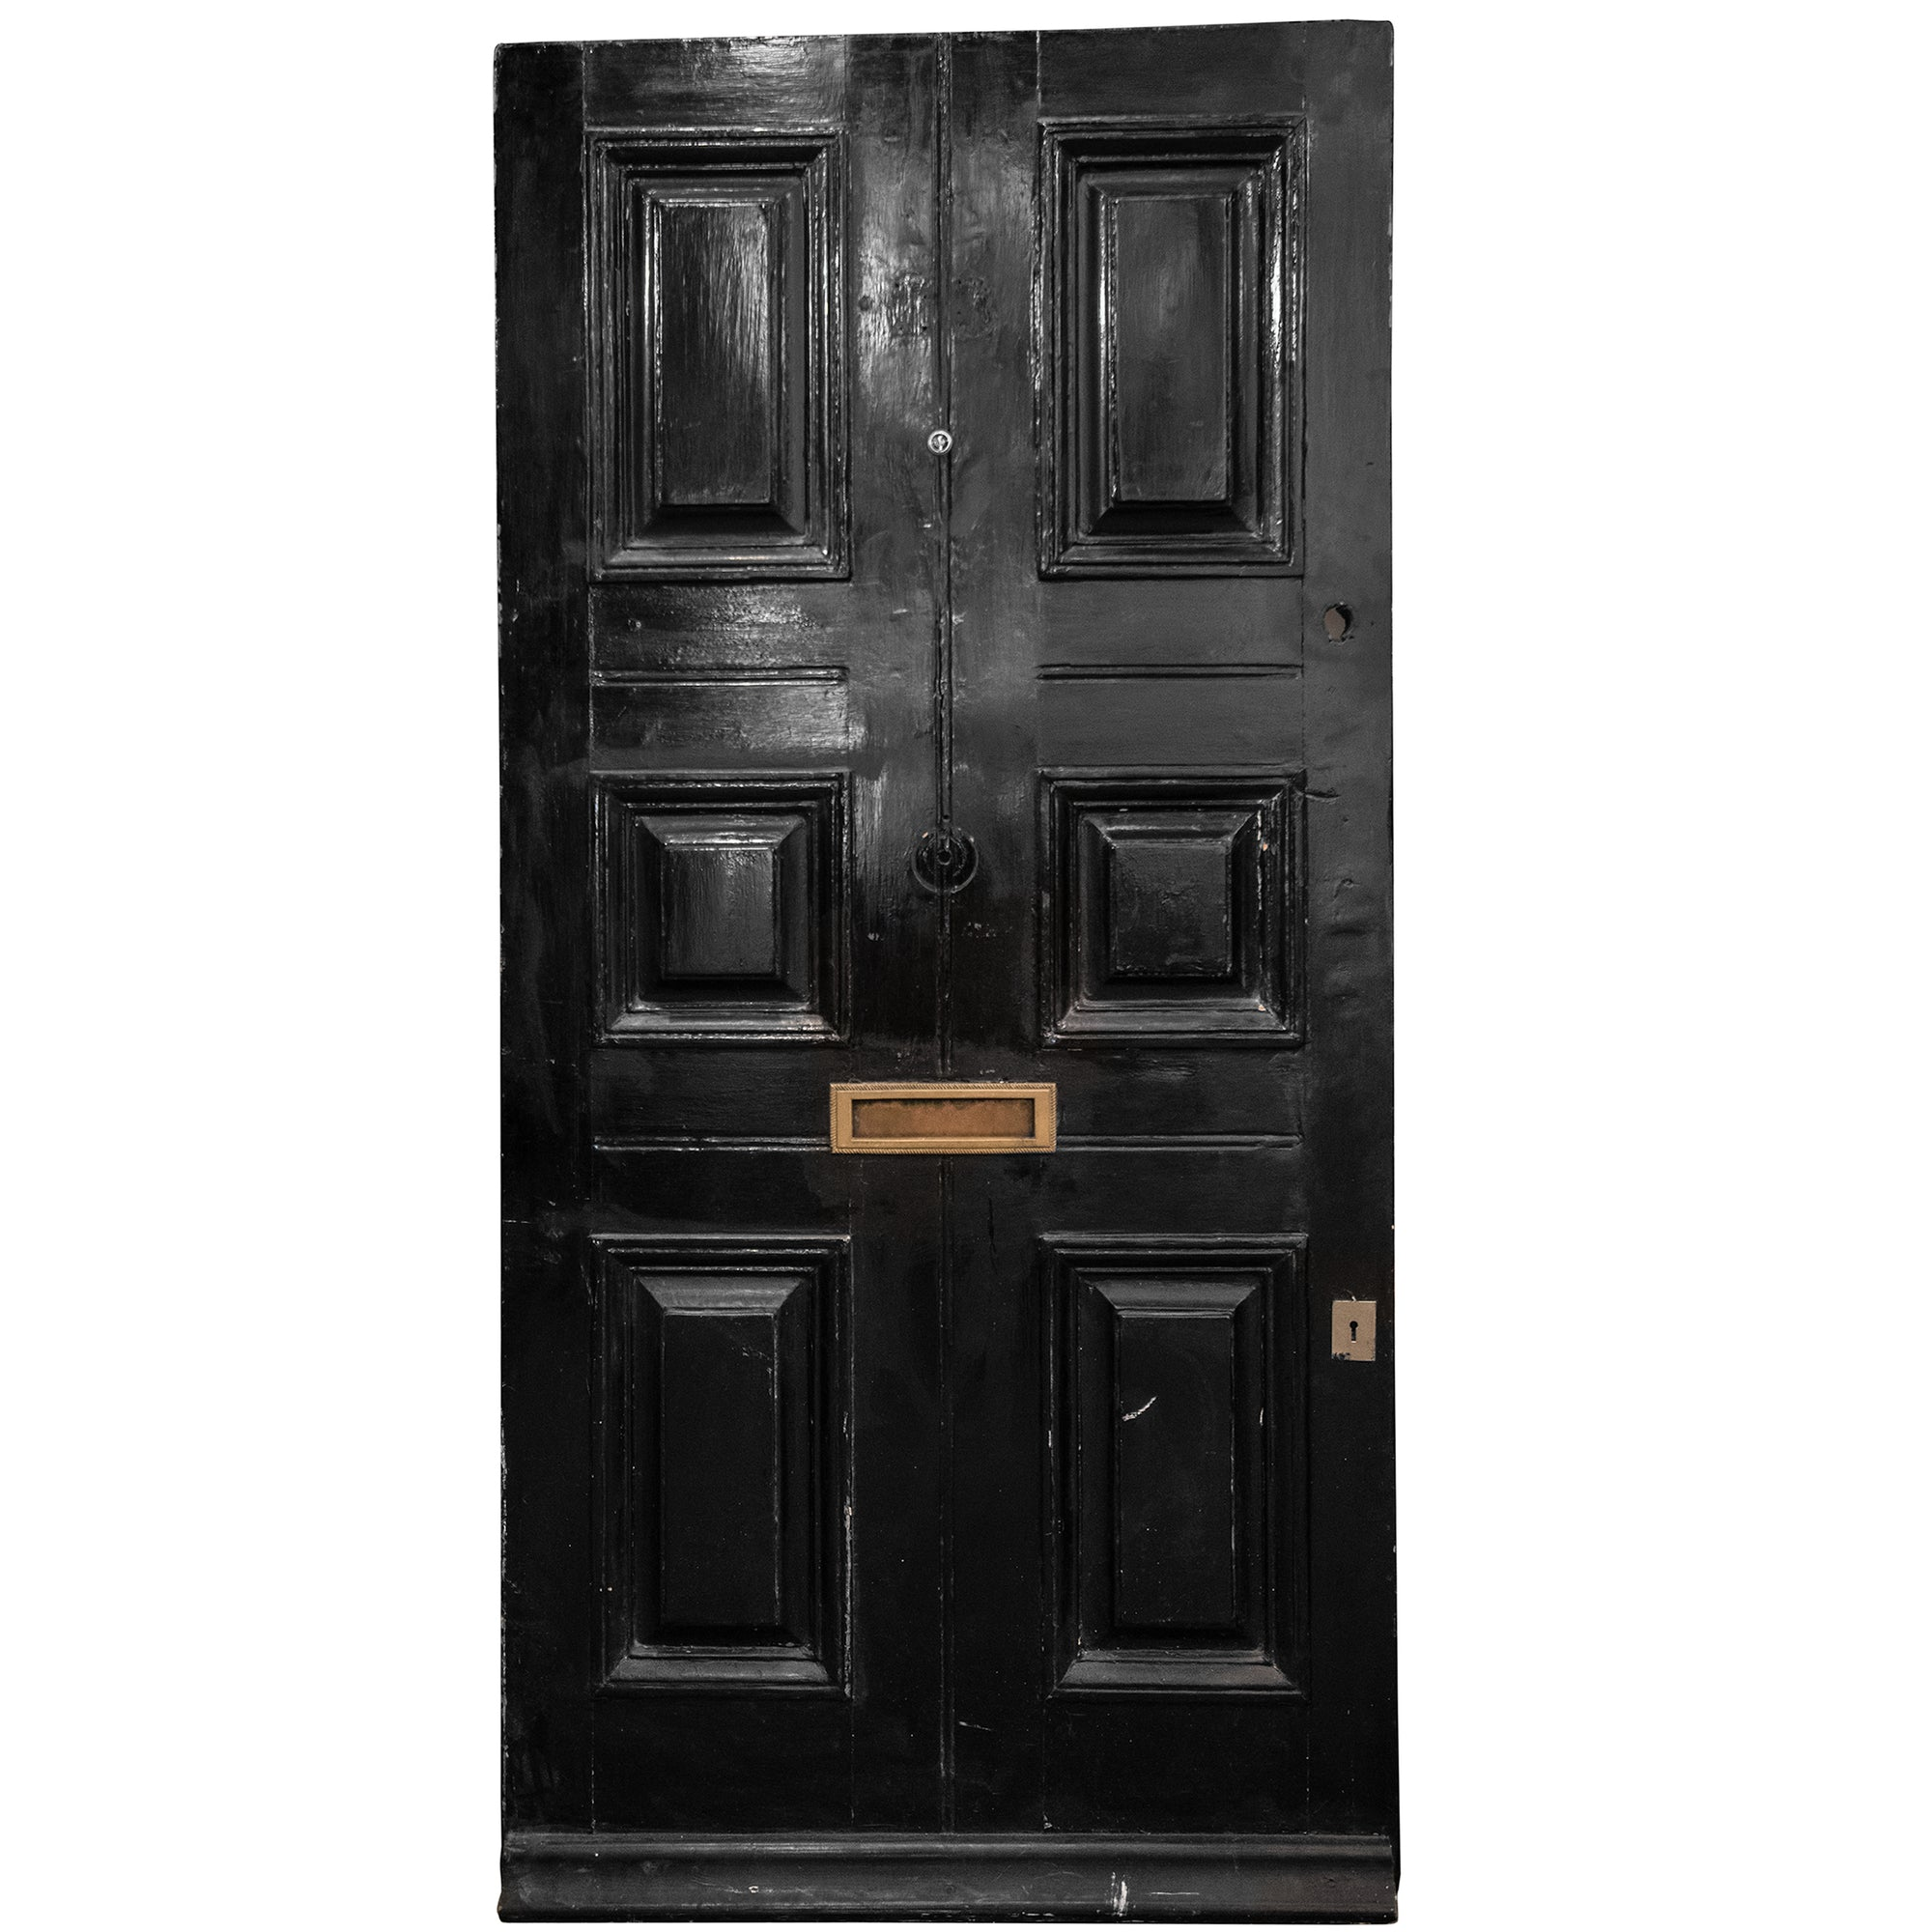 Antique Georgian 6 Panel Front Door - 204.5cm x 100cm